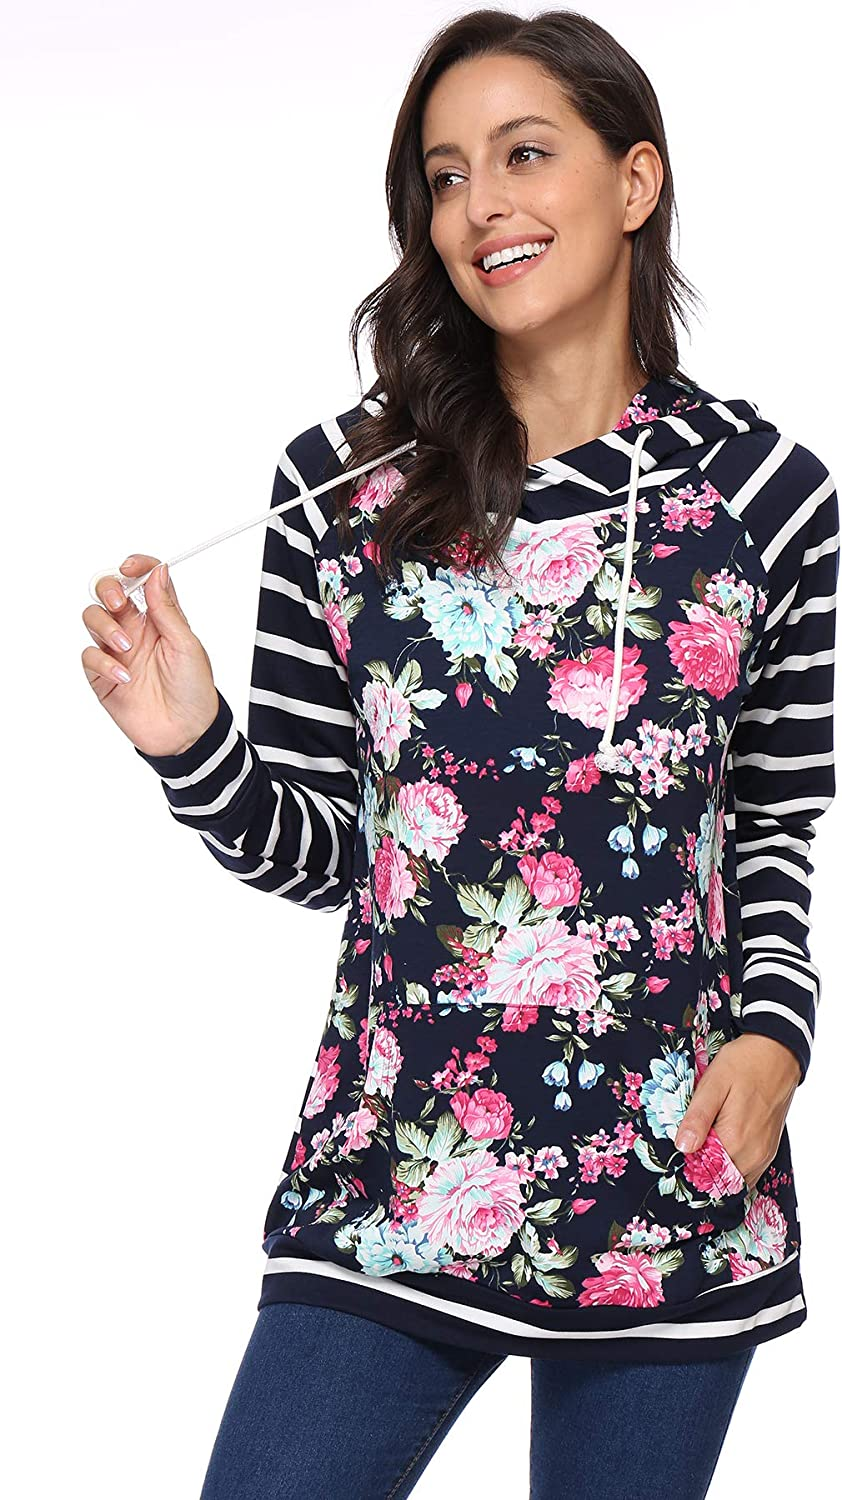 XQT Plus Size Hoodies for Women Pullover Floral Printed Long Sleeve Drawstring Sweatshirt with Pockets